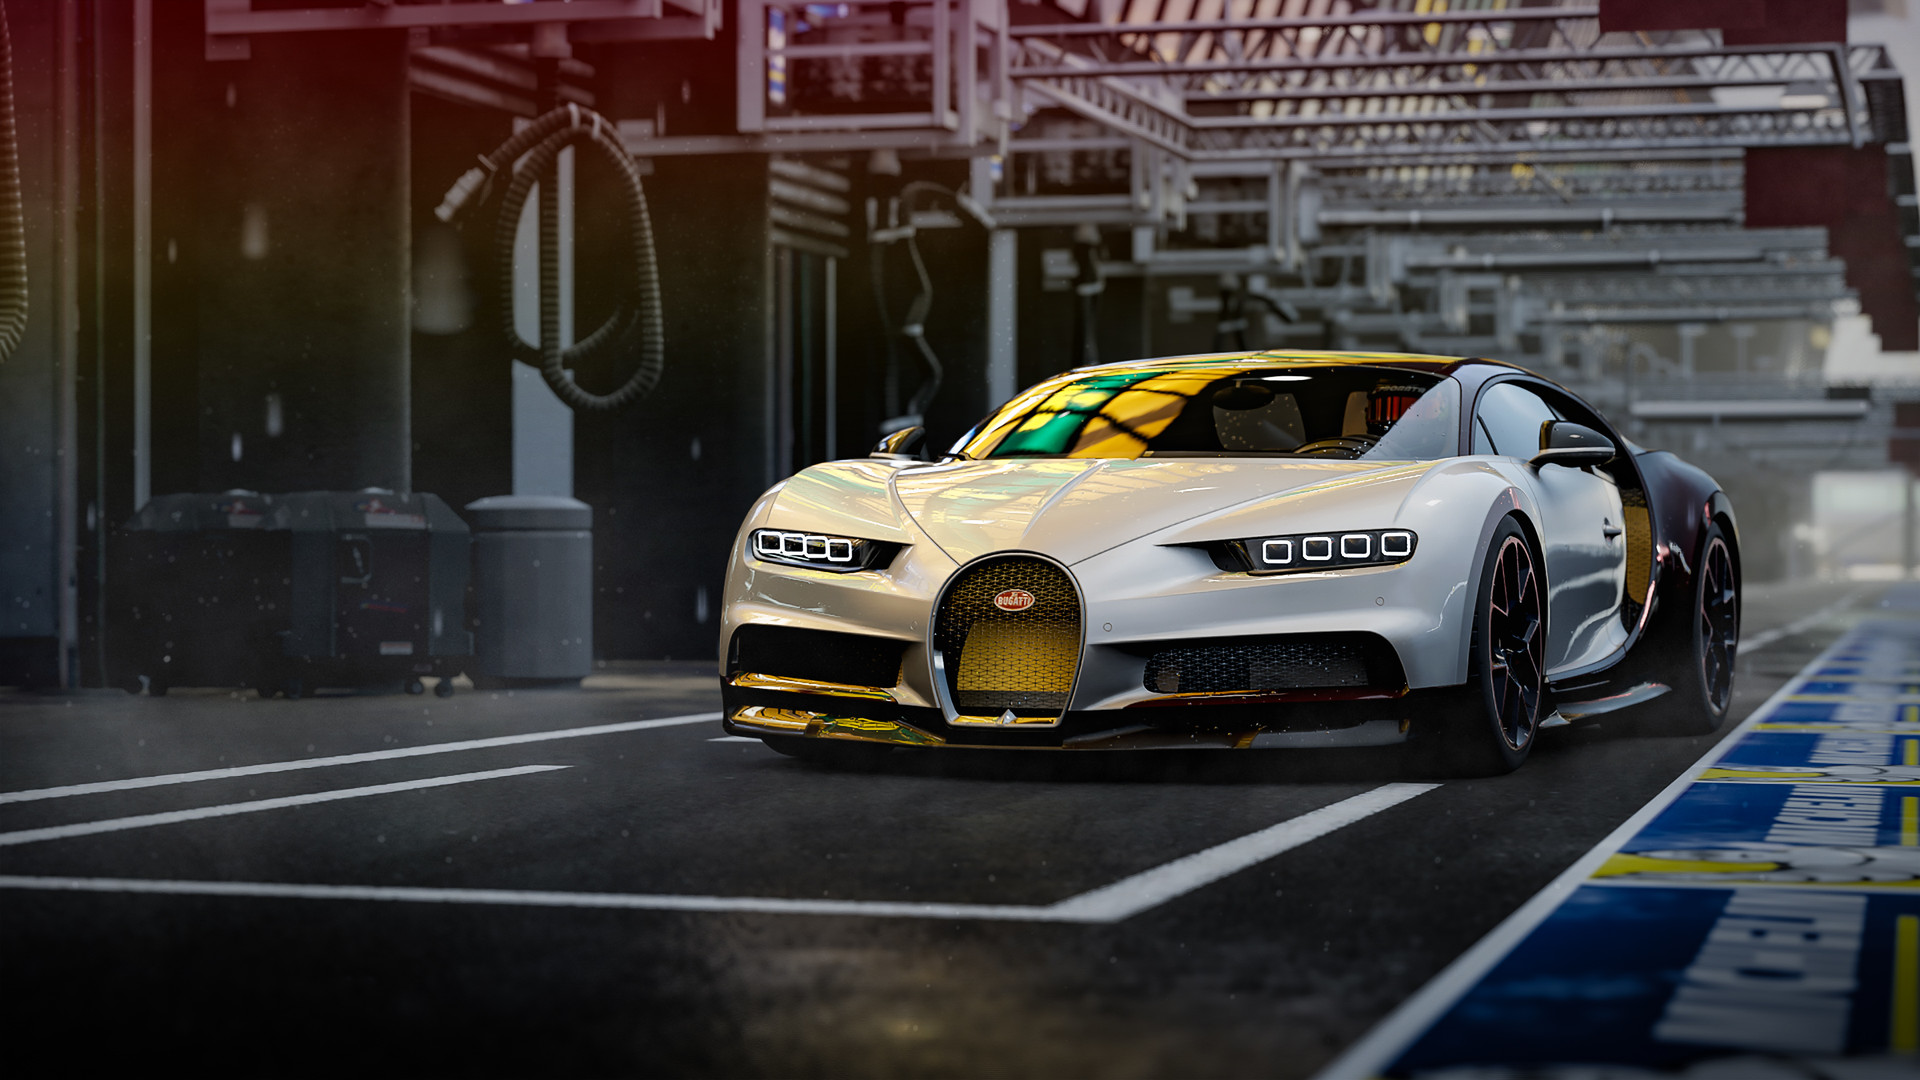 1920x1080 Bugatti Chiron 1500 Hp Laptop Full Hd 1080p Hd 4k Wallpapers Images Backgrounds Photos And Pictures